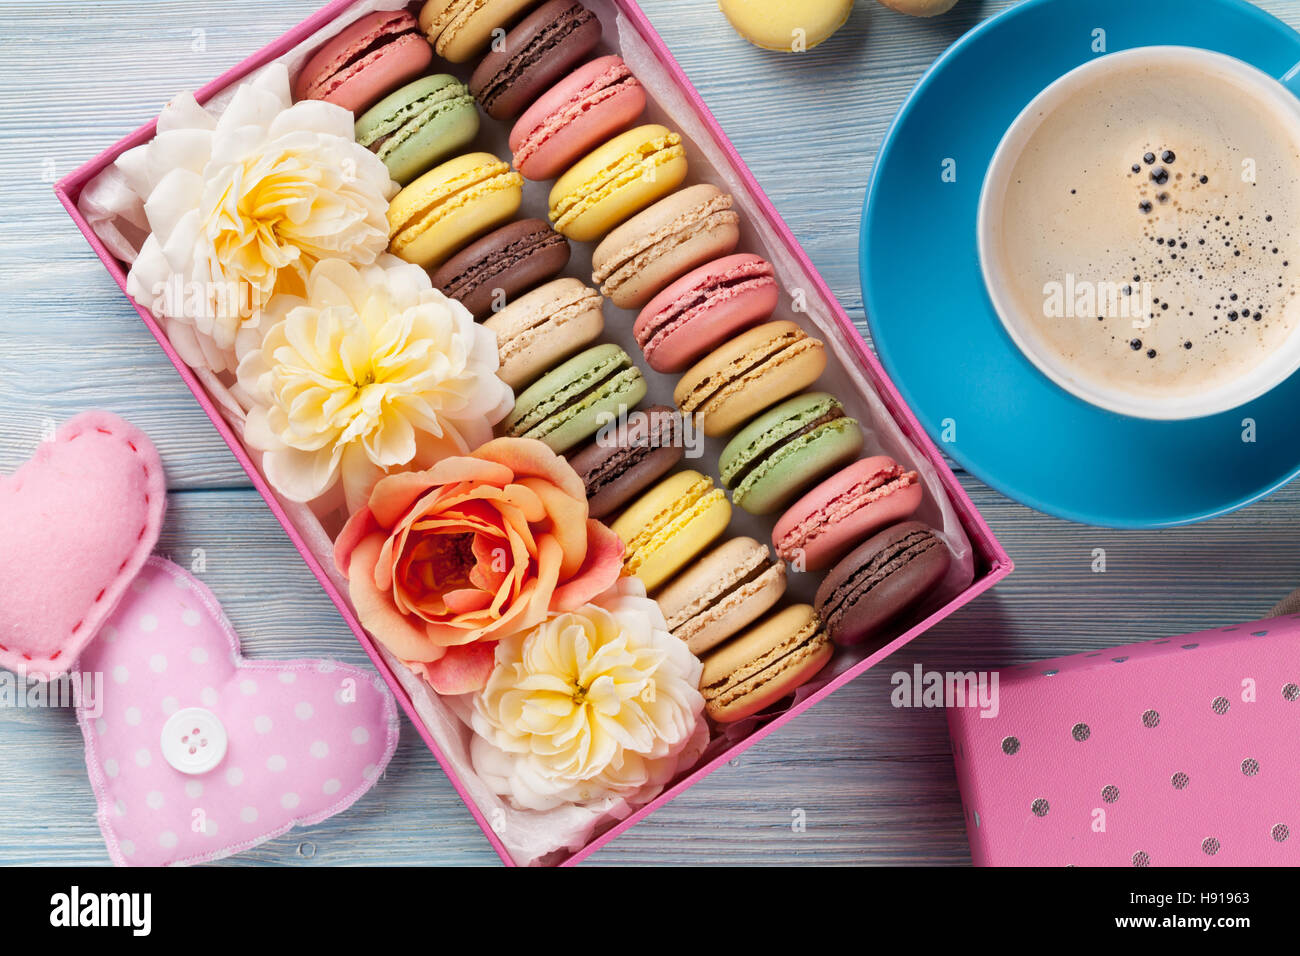 Colorful macaroons and coffee on wooden table. Sweet macarons in gift box and hearts. Top view - Stock Image